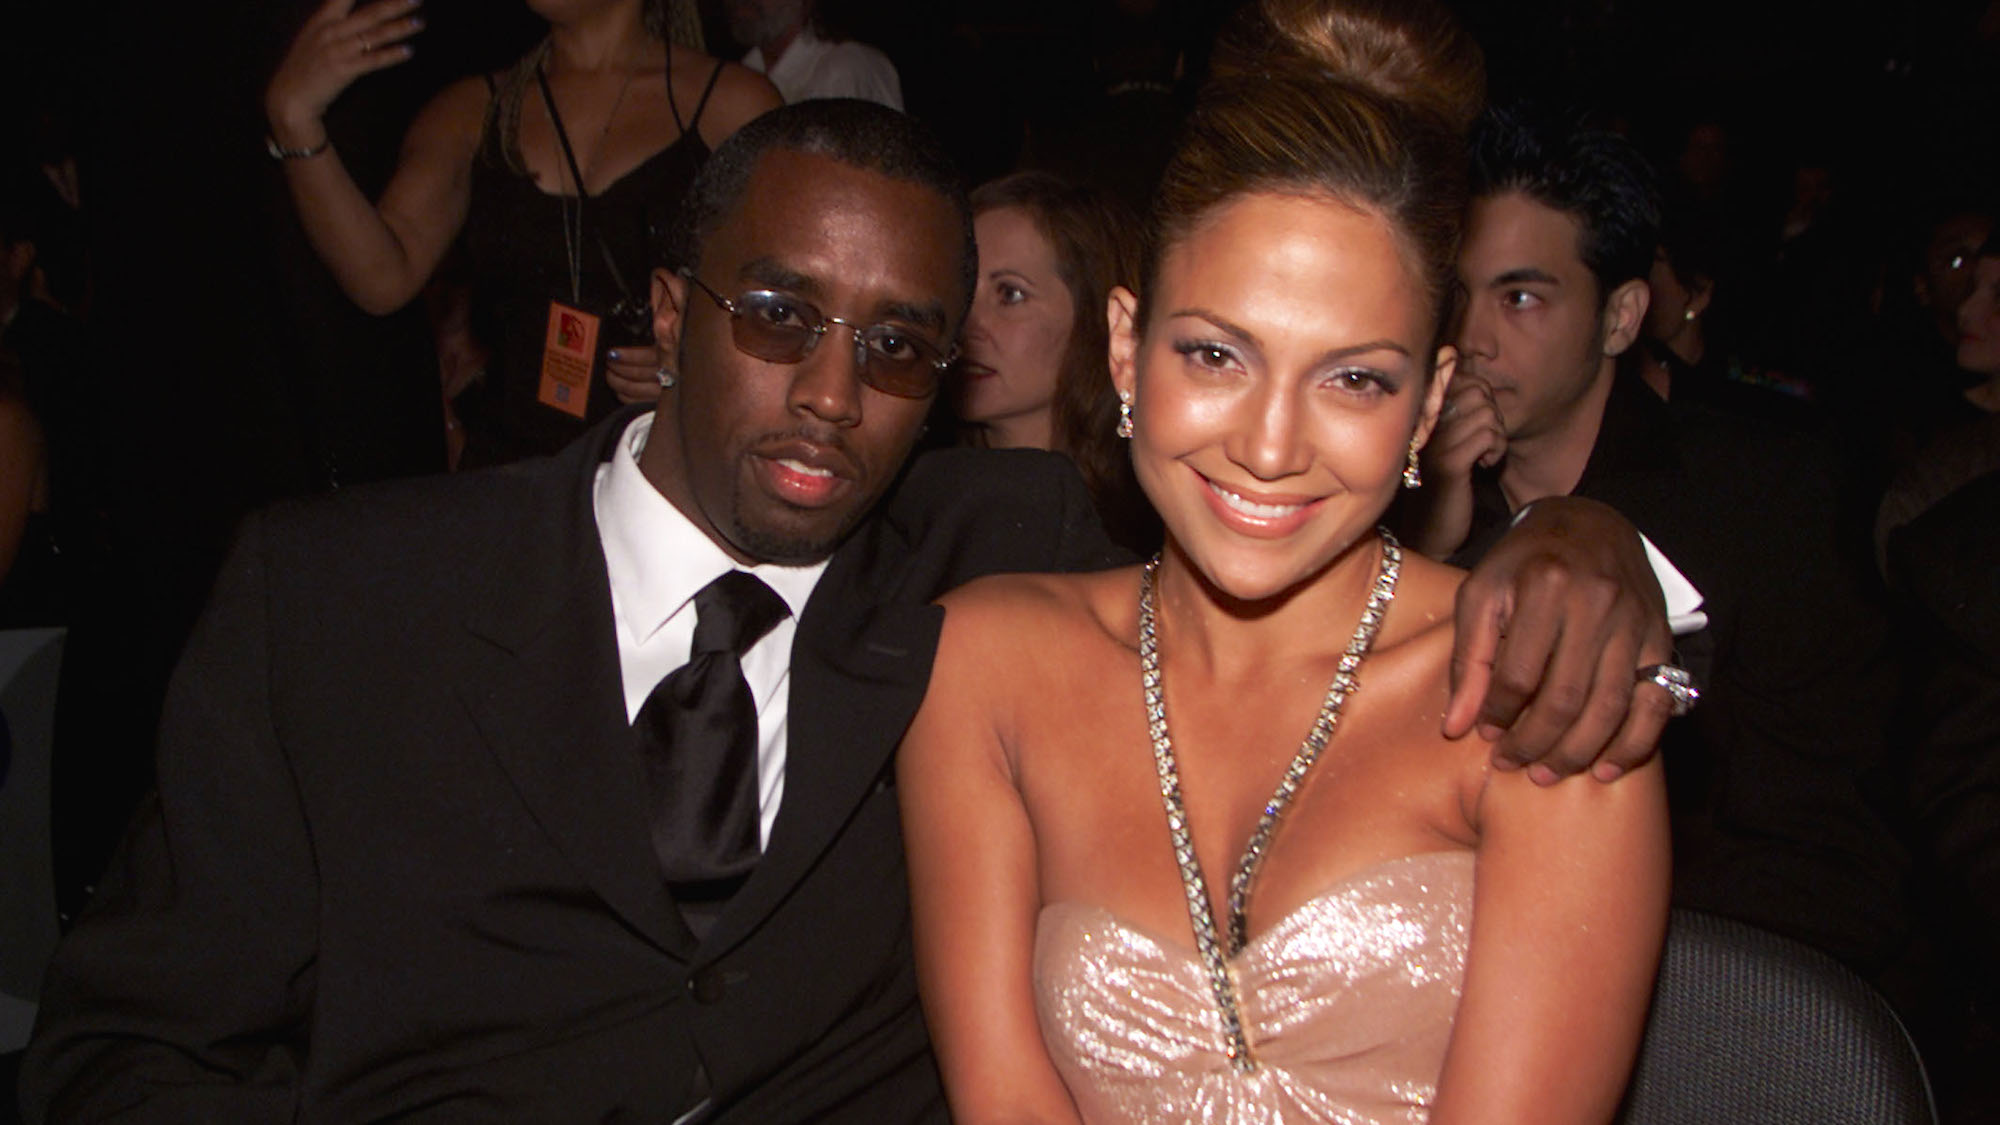 jlo and diddy relationship